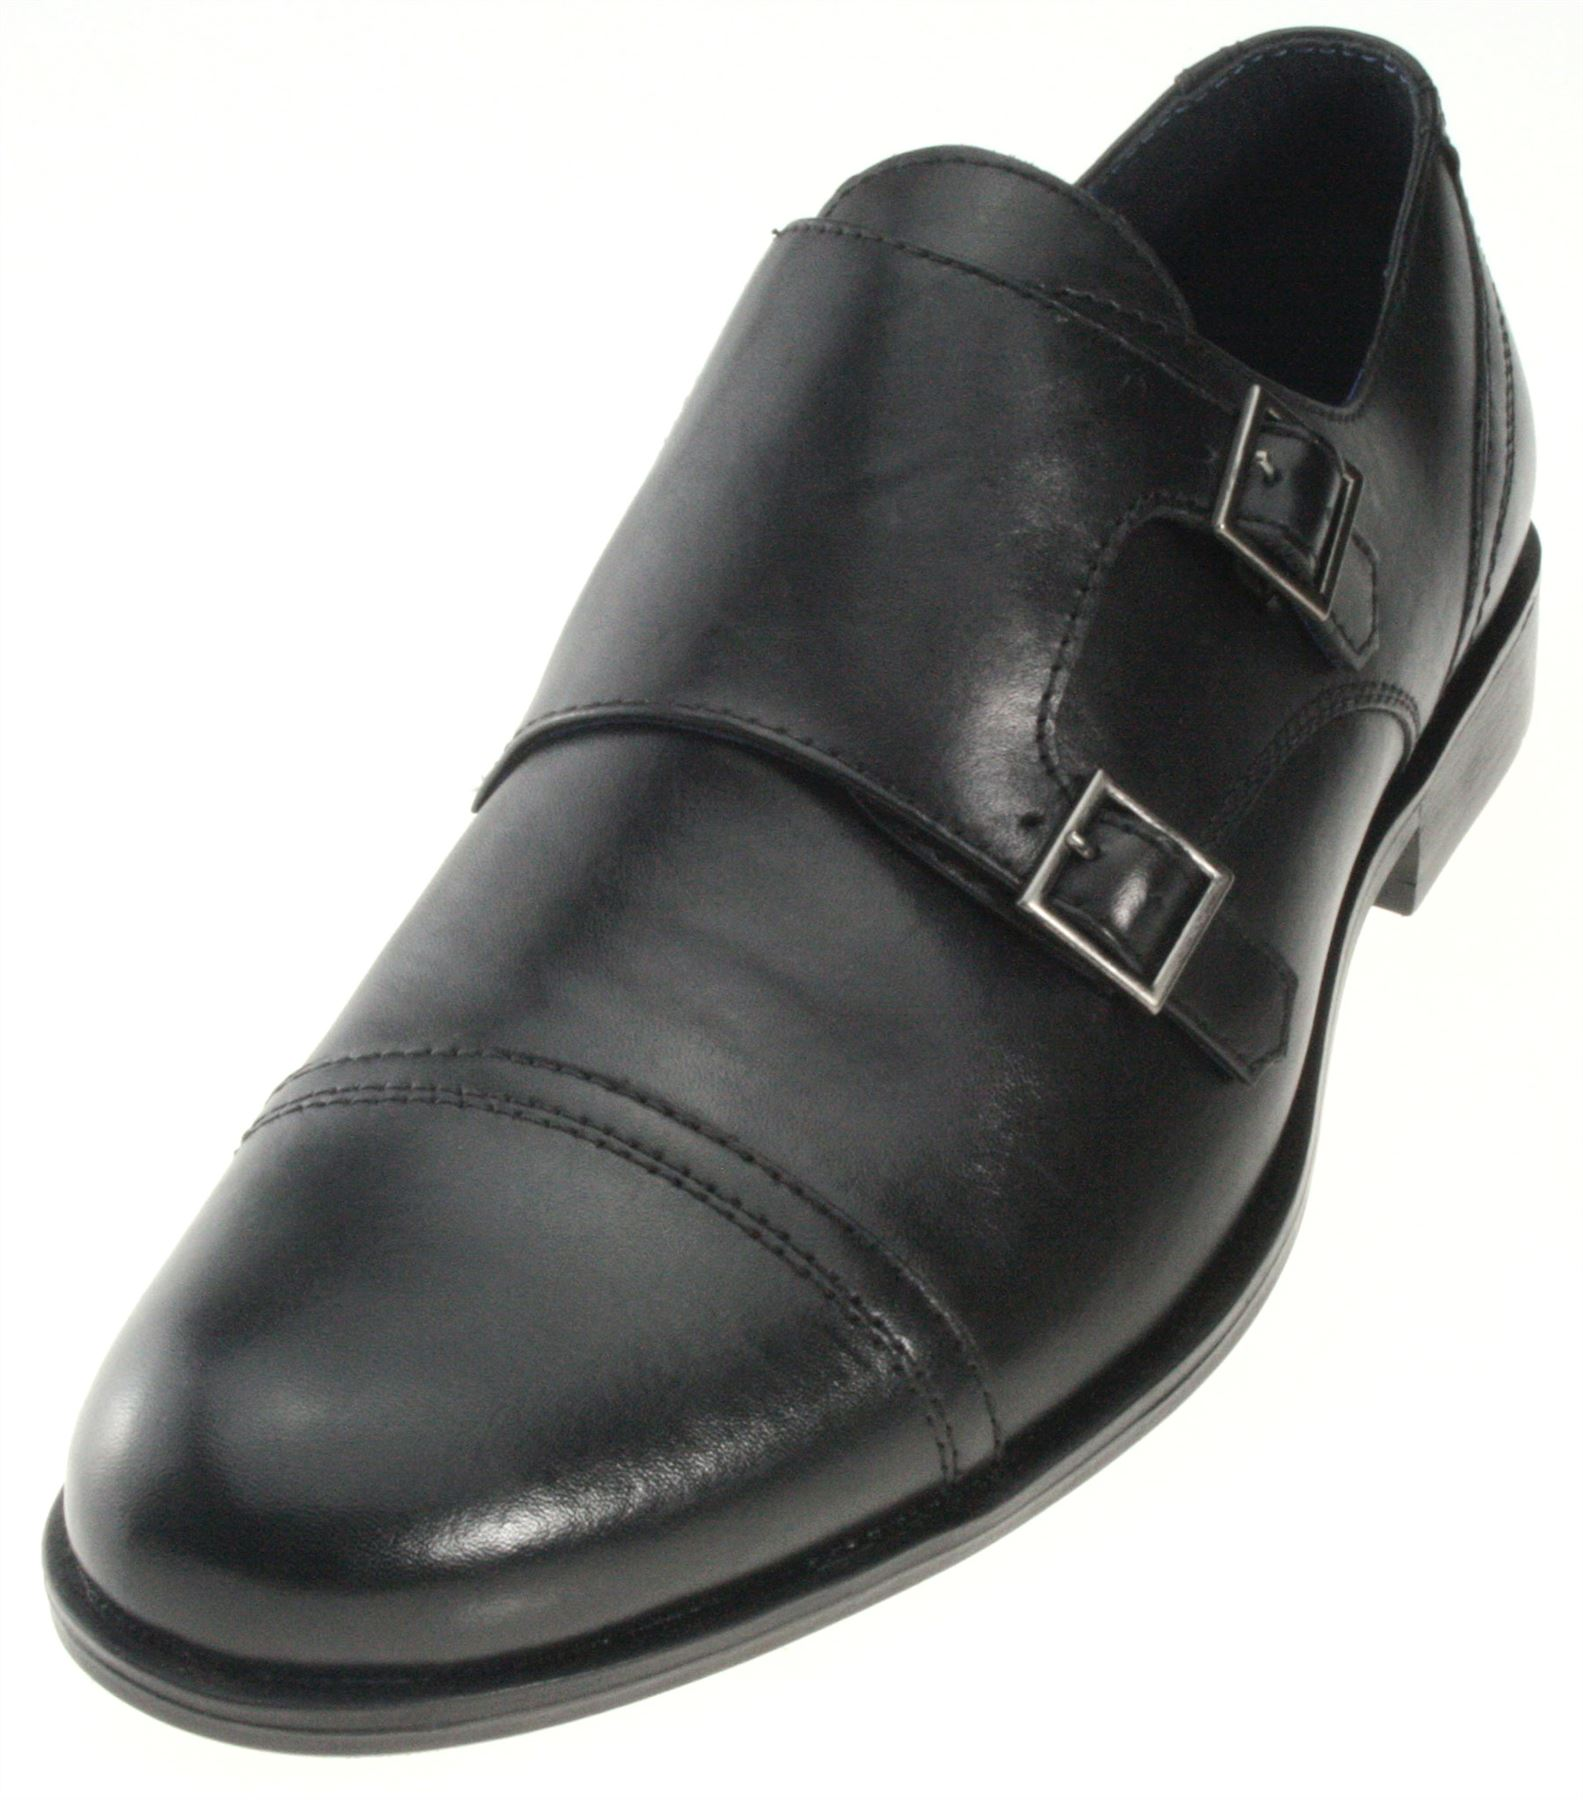 Shop Monk Strap men's dress shoes, wing tips, oxfords, loafers and more at Macy's! Get FREE shipping. Macy's Presents: The Edit- A curated mix of fashion and inspiration Check It Out. Calvin Klein Men's Robbie Brushed Leather Monk-Strap Loafers.